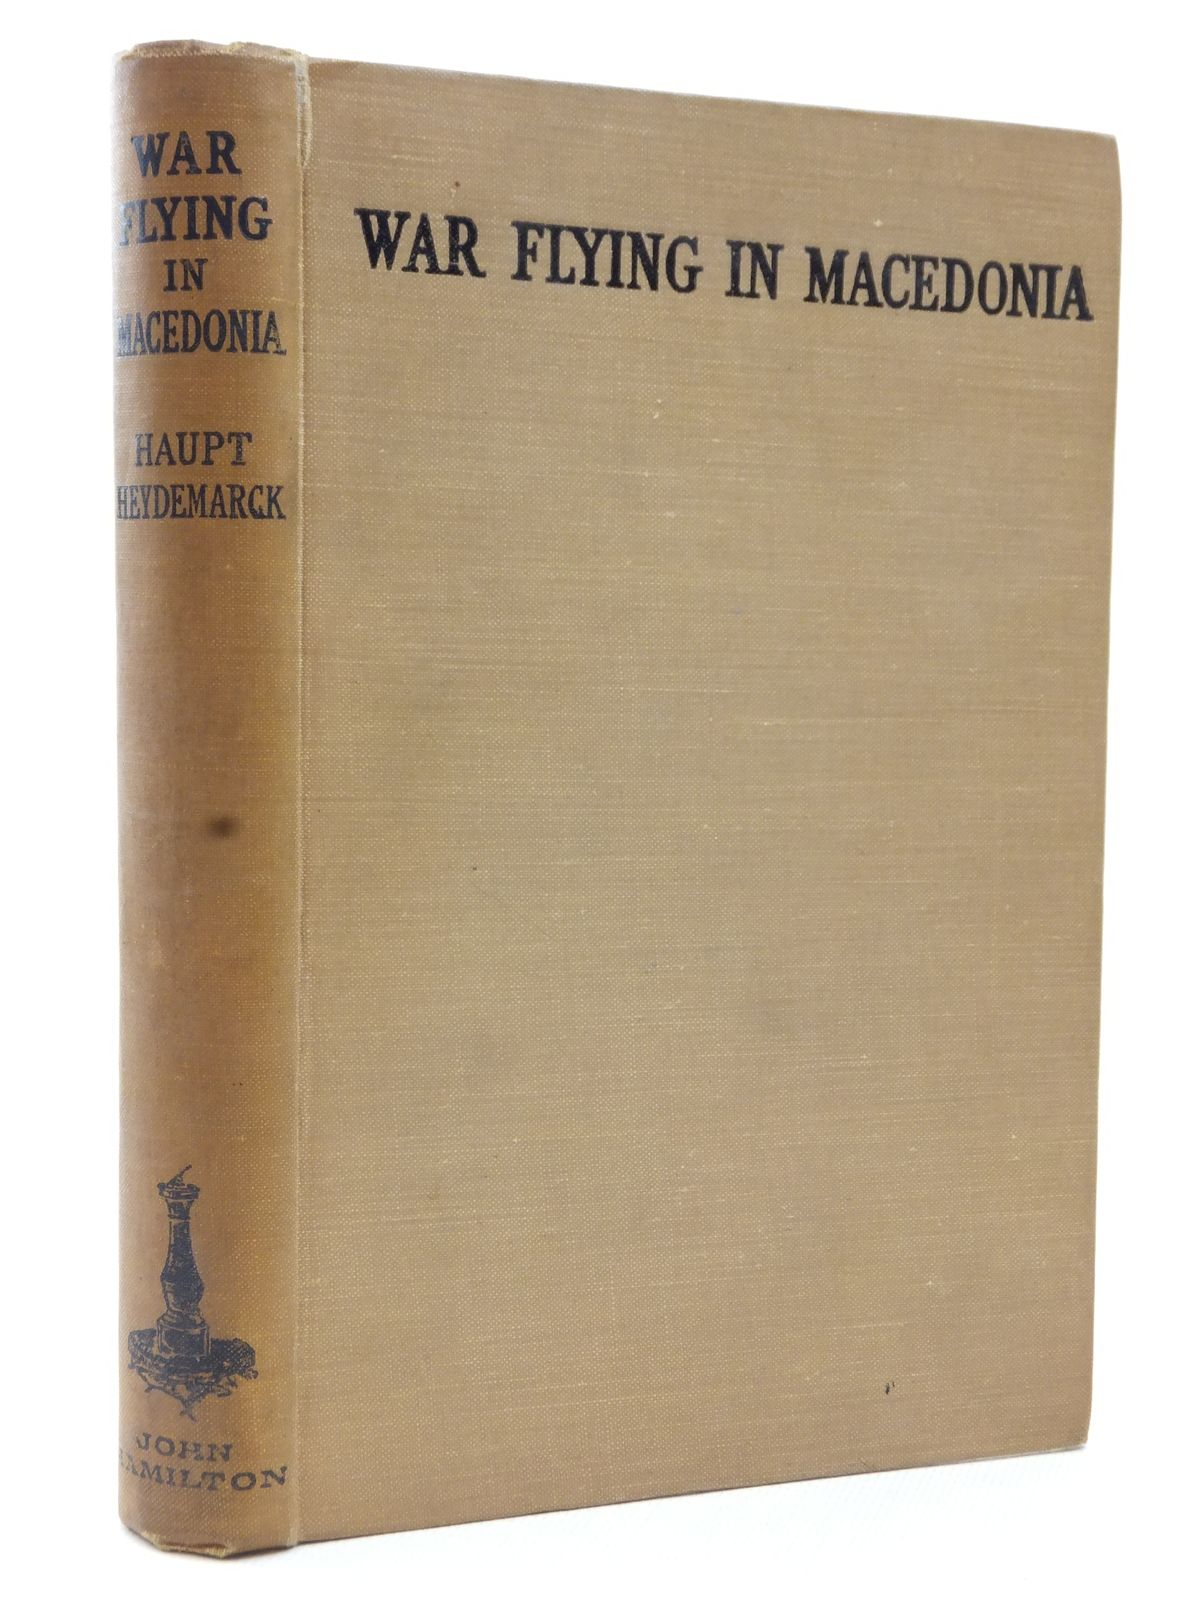 Photo of WAR FLYING IN MACEDONIA written by Heydemarck, Haupt published by John Hamilton Ltd. (STOCK CODE: 2123192)  for sale by Stella & Rose's Books